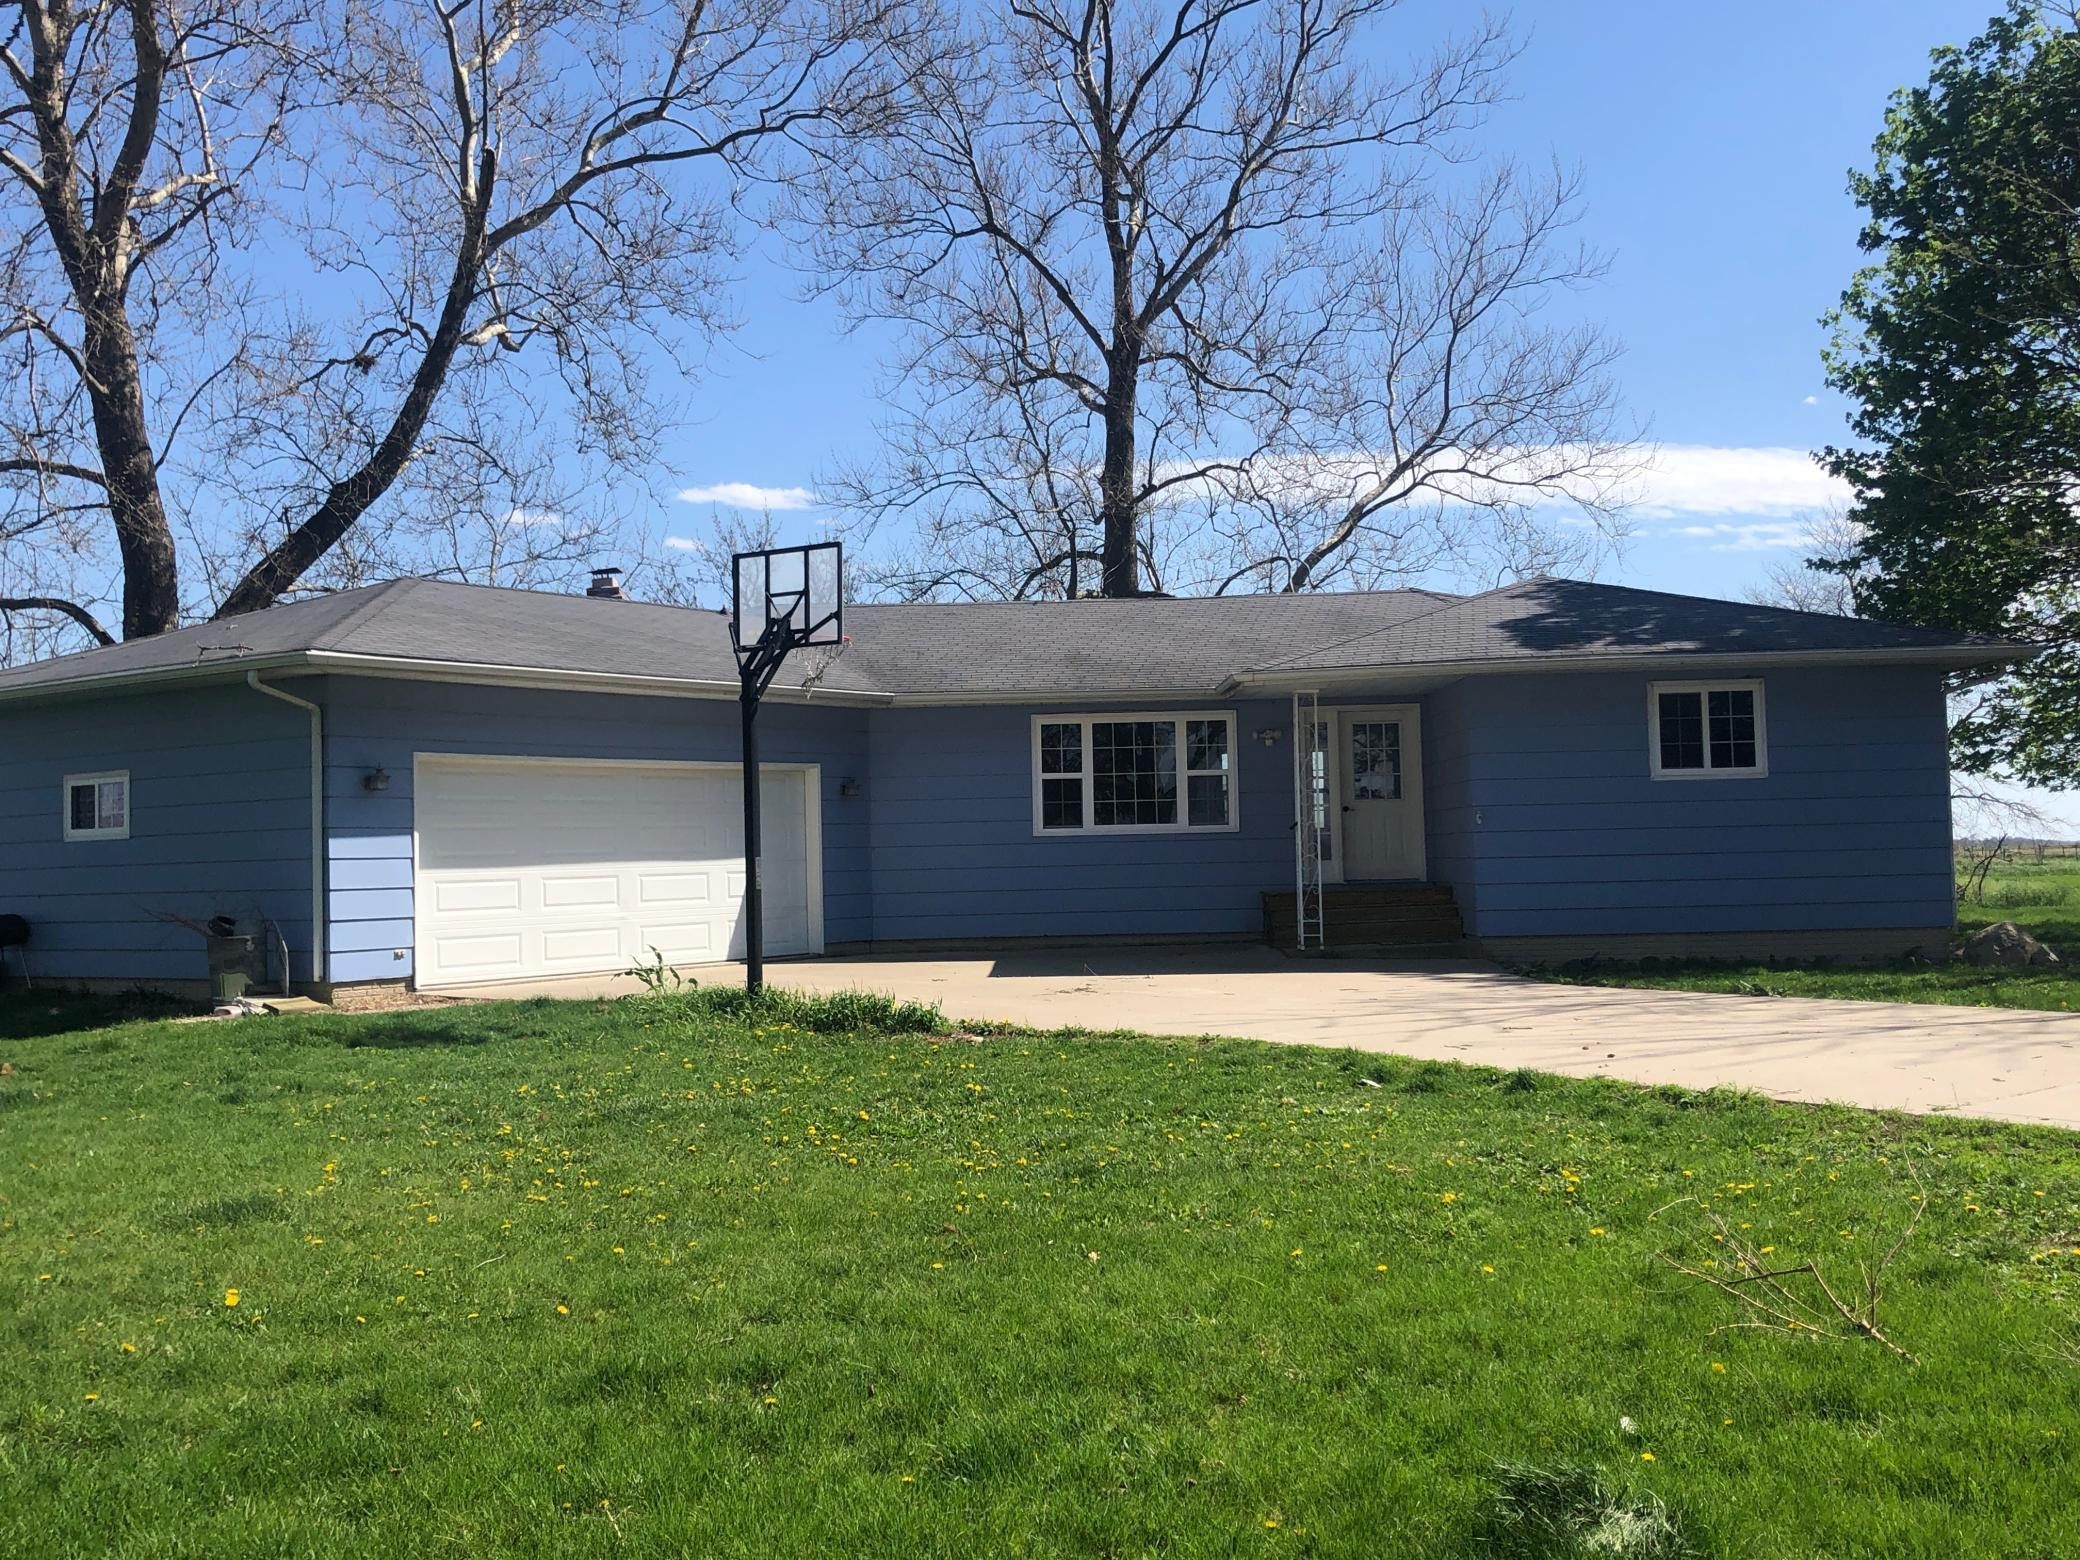 13627 75th, Grinnell, Iowa 50112-7633, 3 Bedrooms Bedrooms, ,1 BathroomBathrooms,Single Family,For Sale,75th,5554987